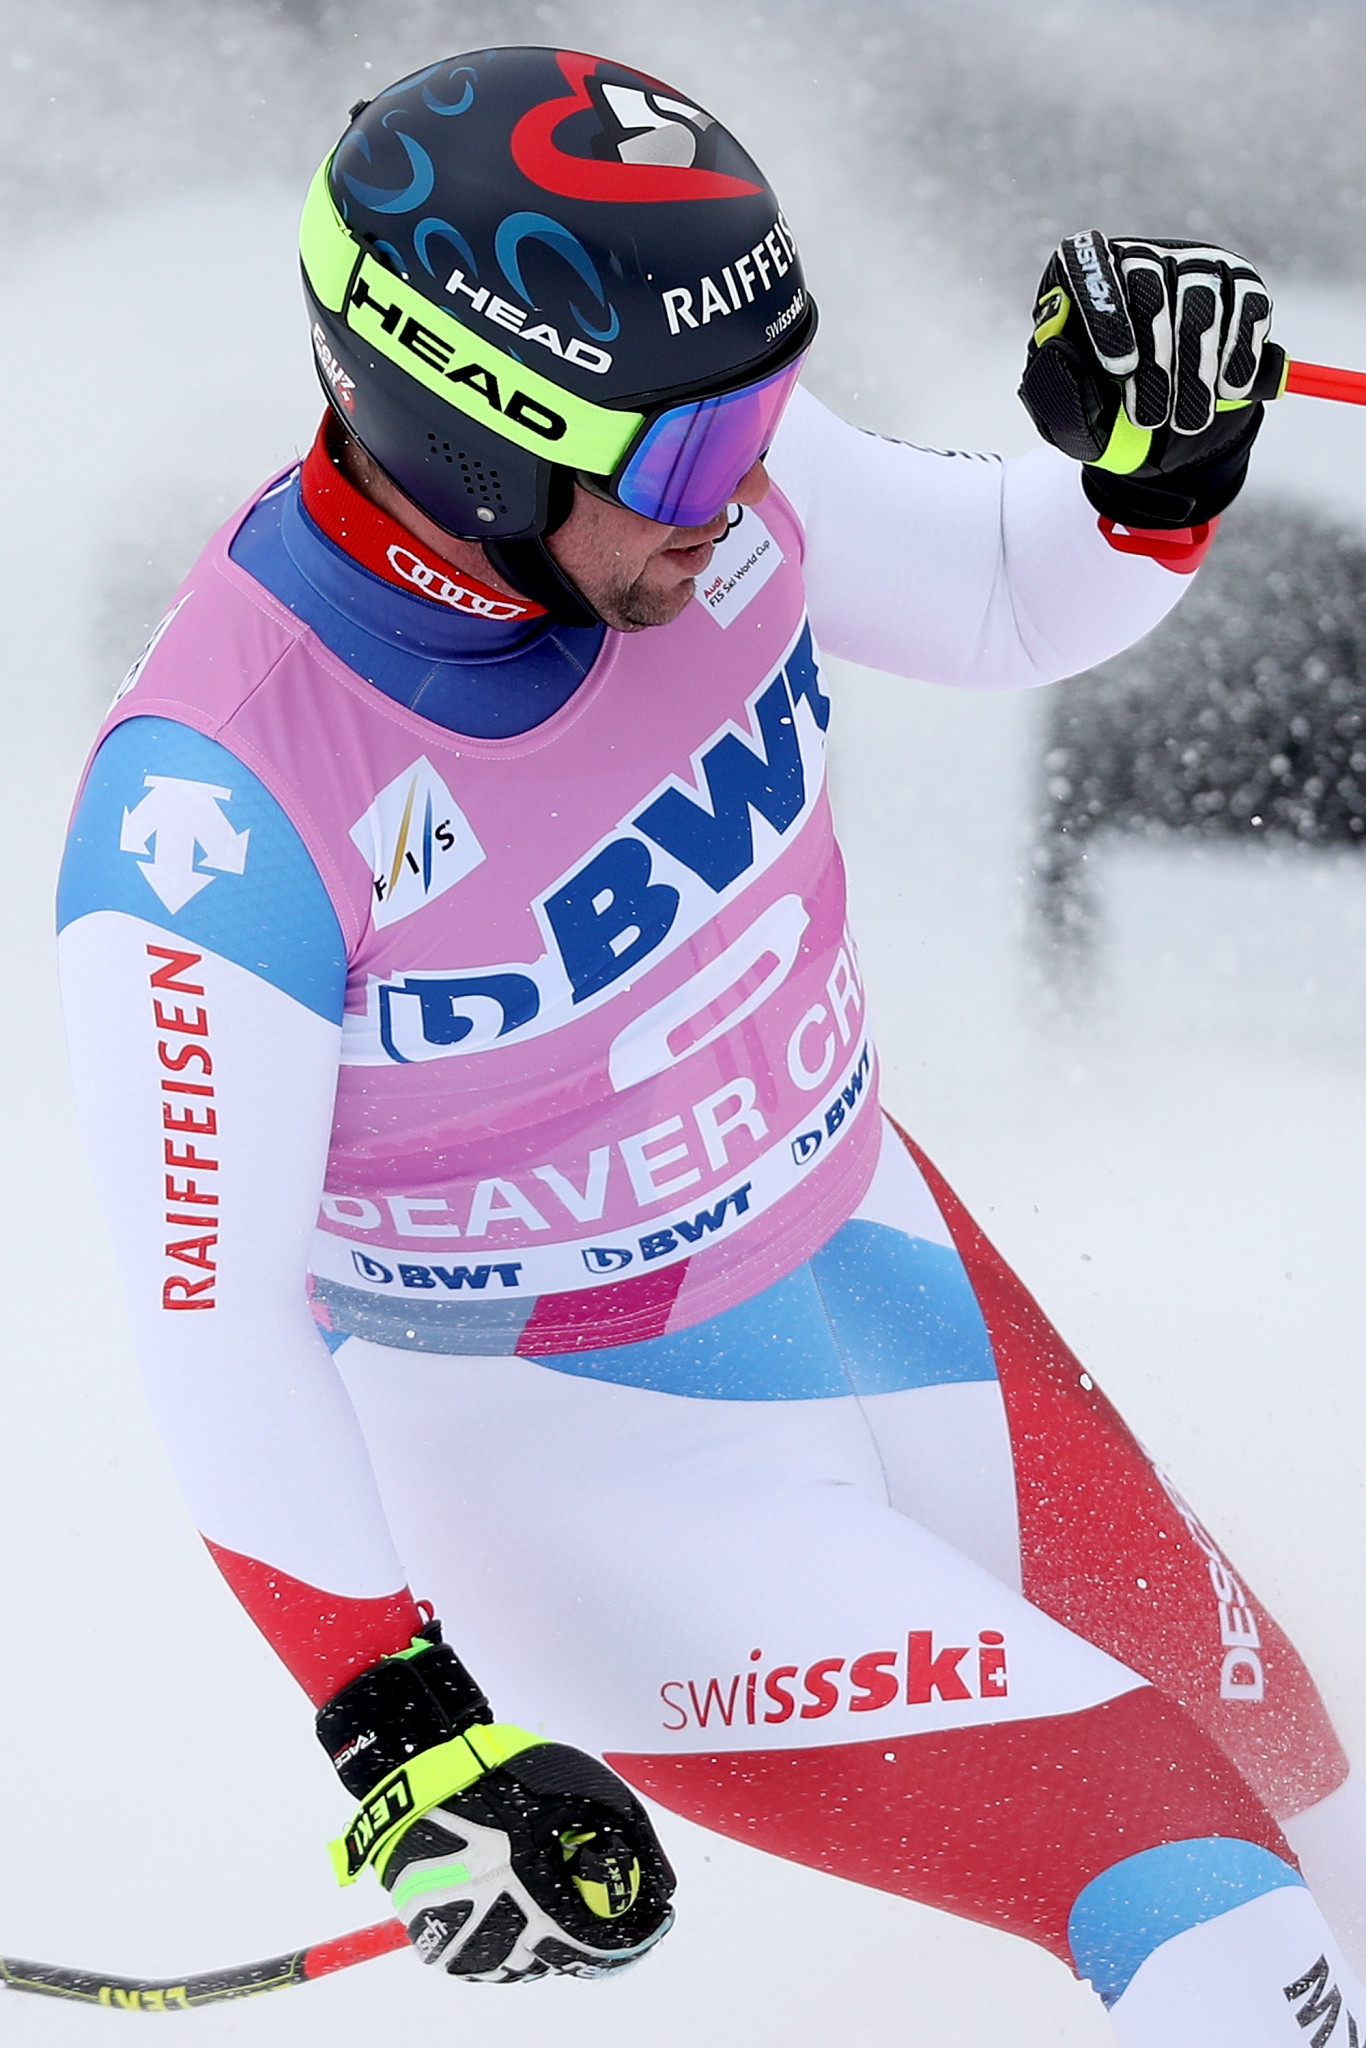 Switzerland's Beat Fuez wins the downhill title at the FIS Alpine World Cup in Beaver Creek ©Getty Images